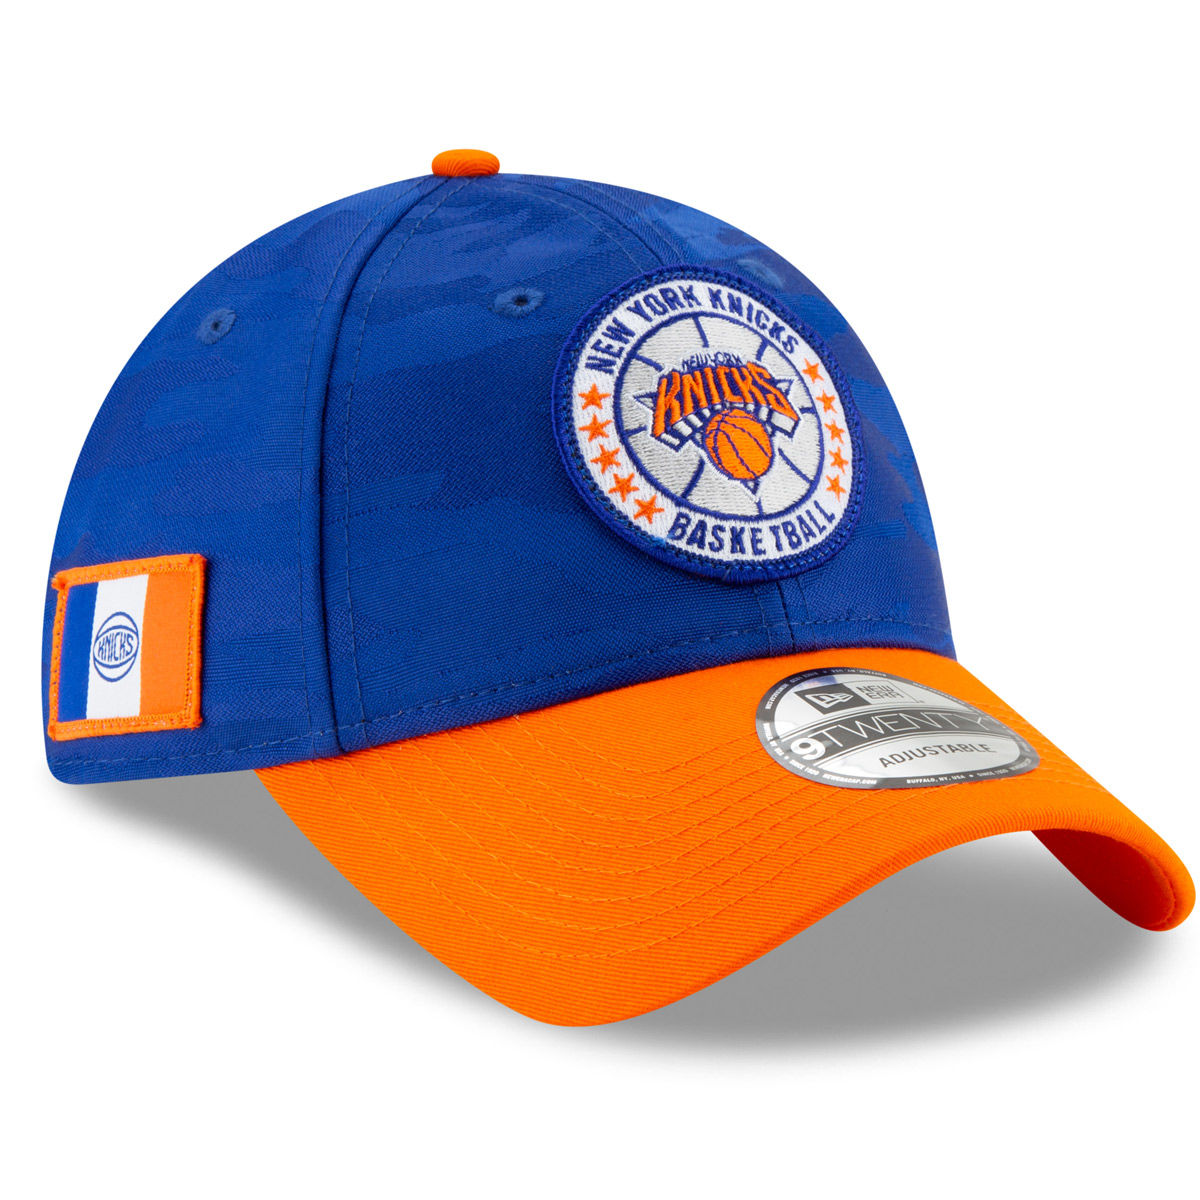 New York Knicks Adult 9TWENTY Tip Off Hat